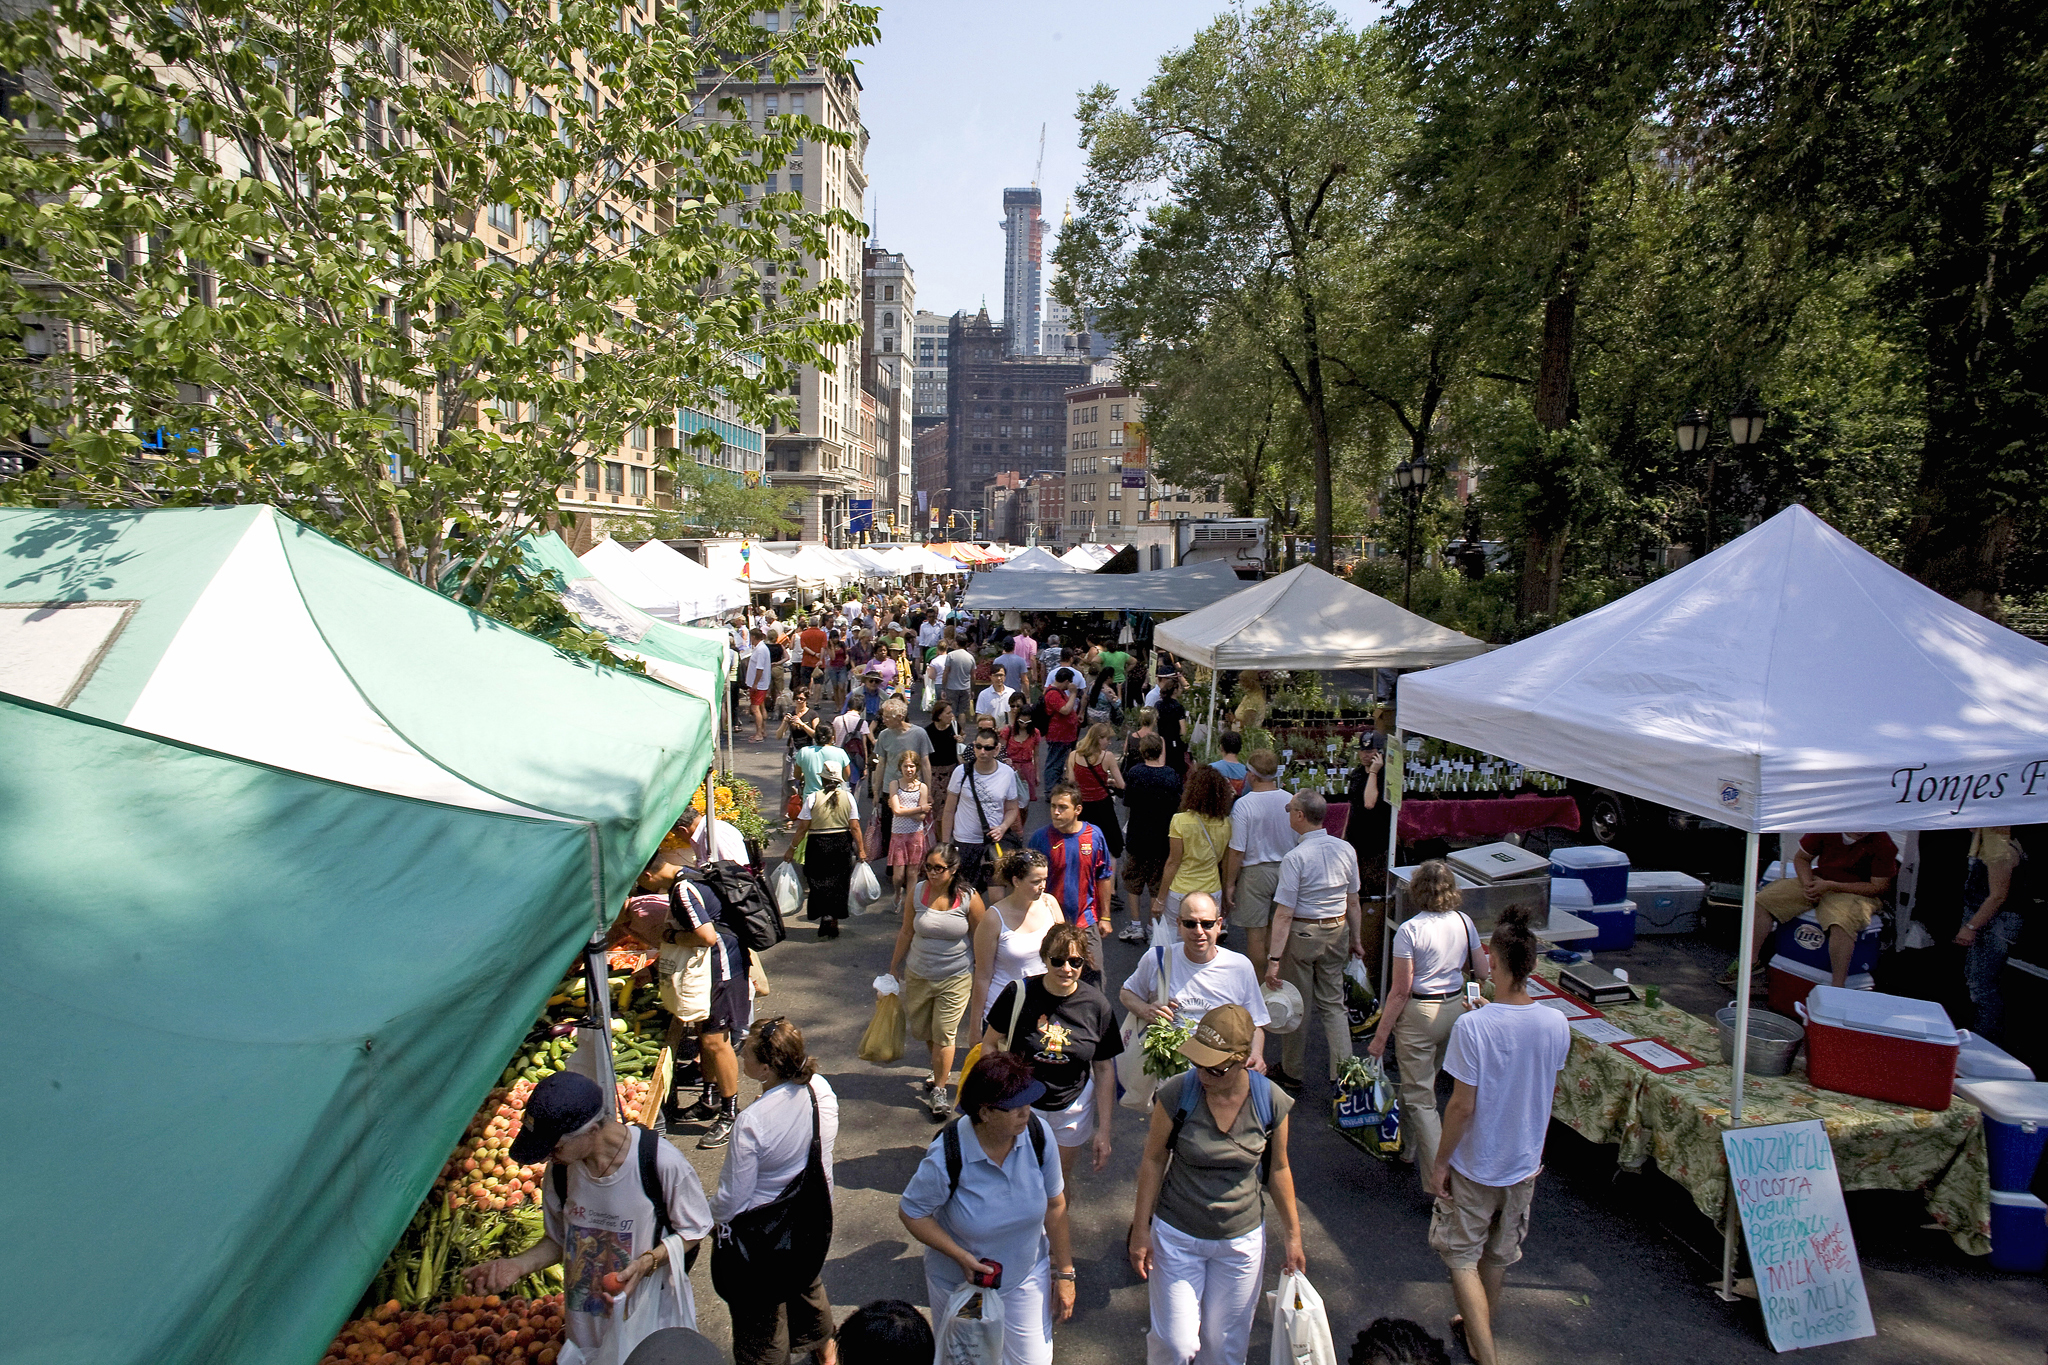 Best stuff to do this weekend: Top 150 weekend activities in NYC